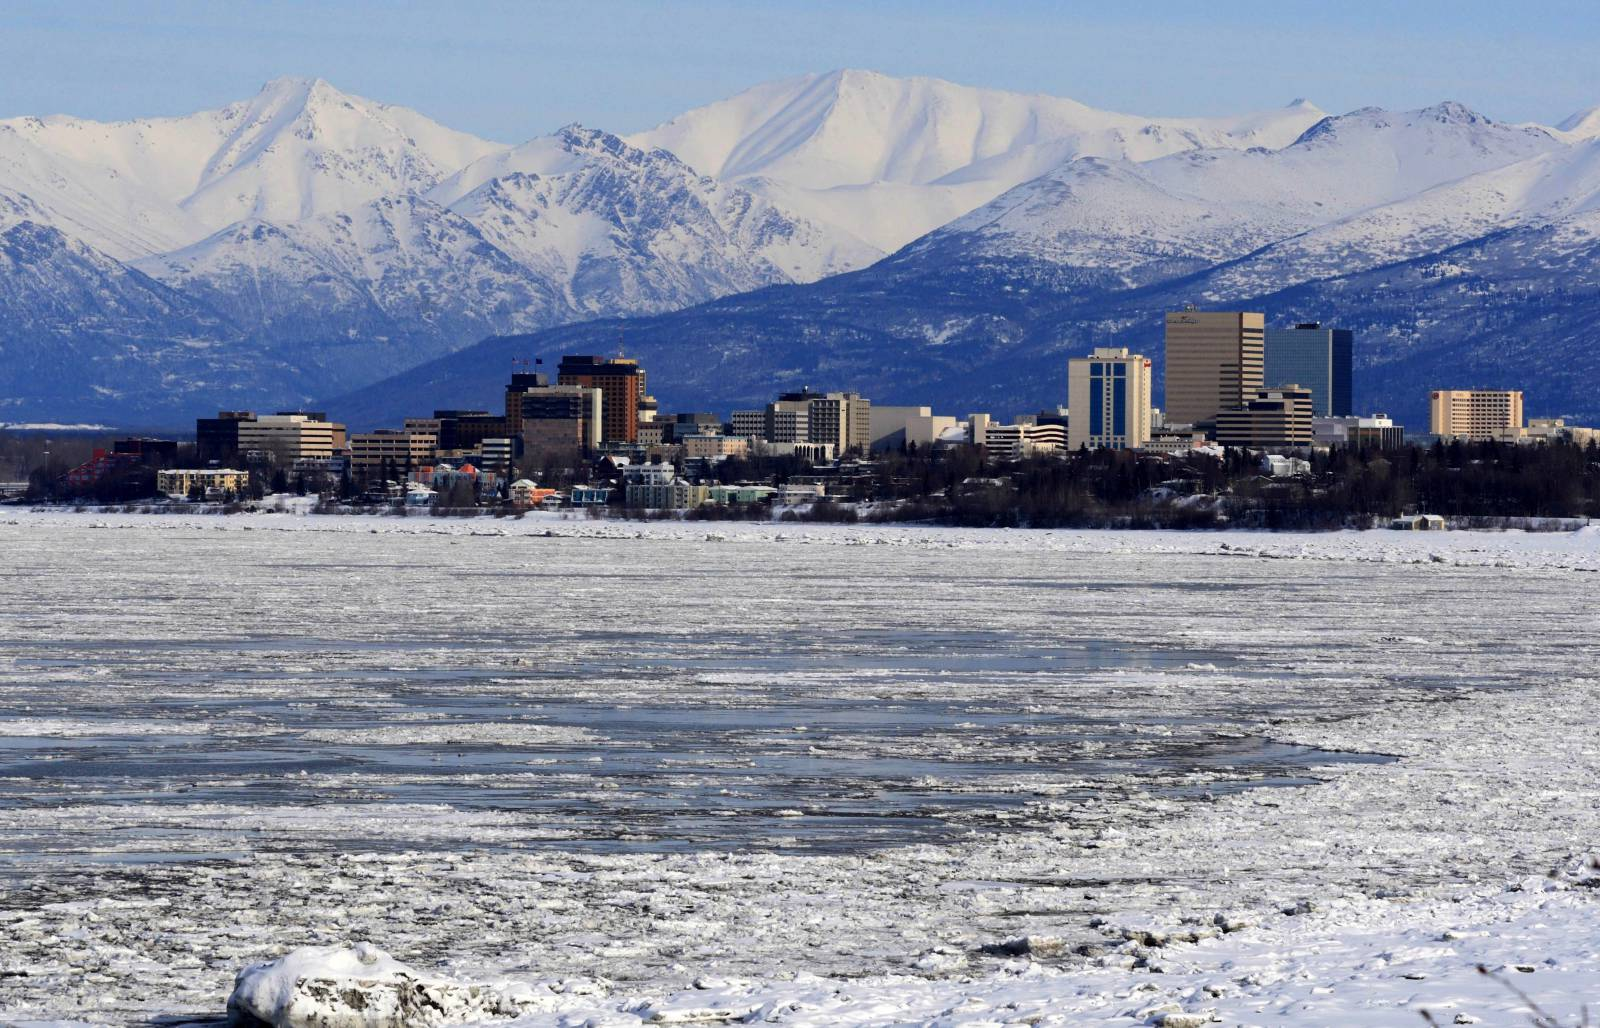 Campaign for eviction ban, rent cancellation, debt forgiveness gathers strength in Alaska